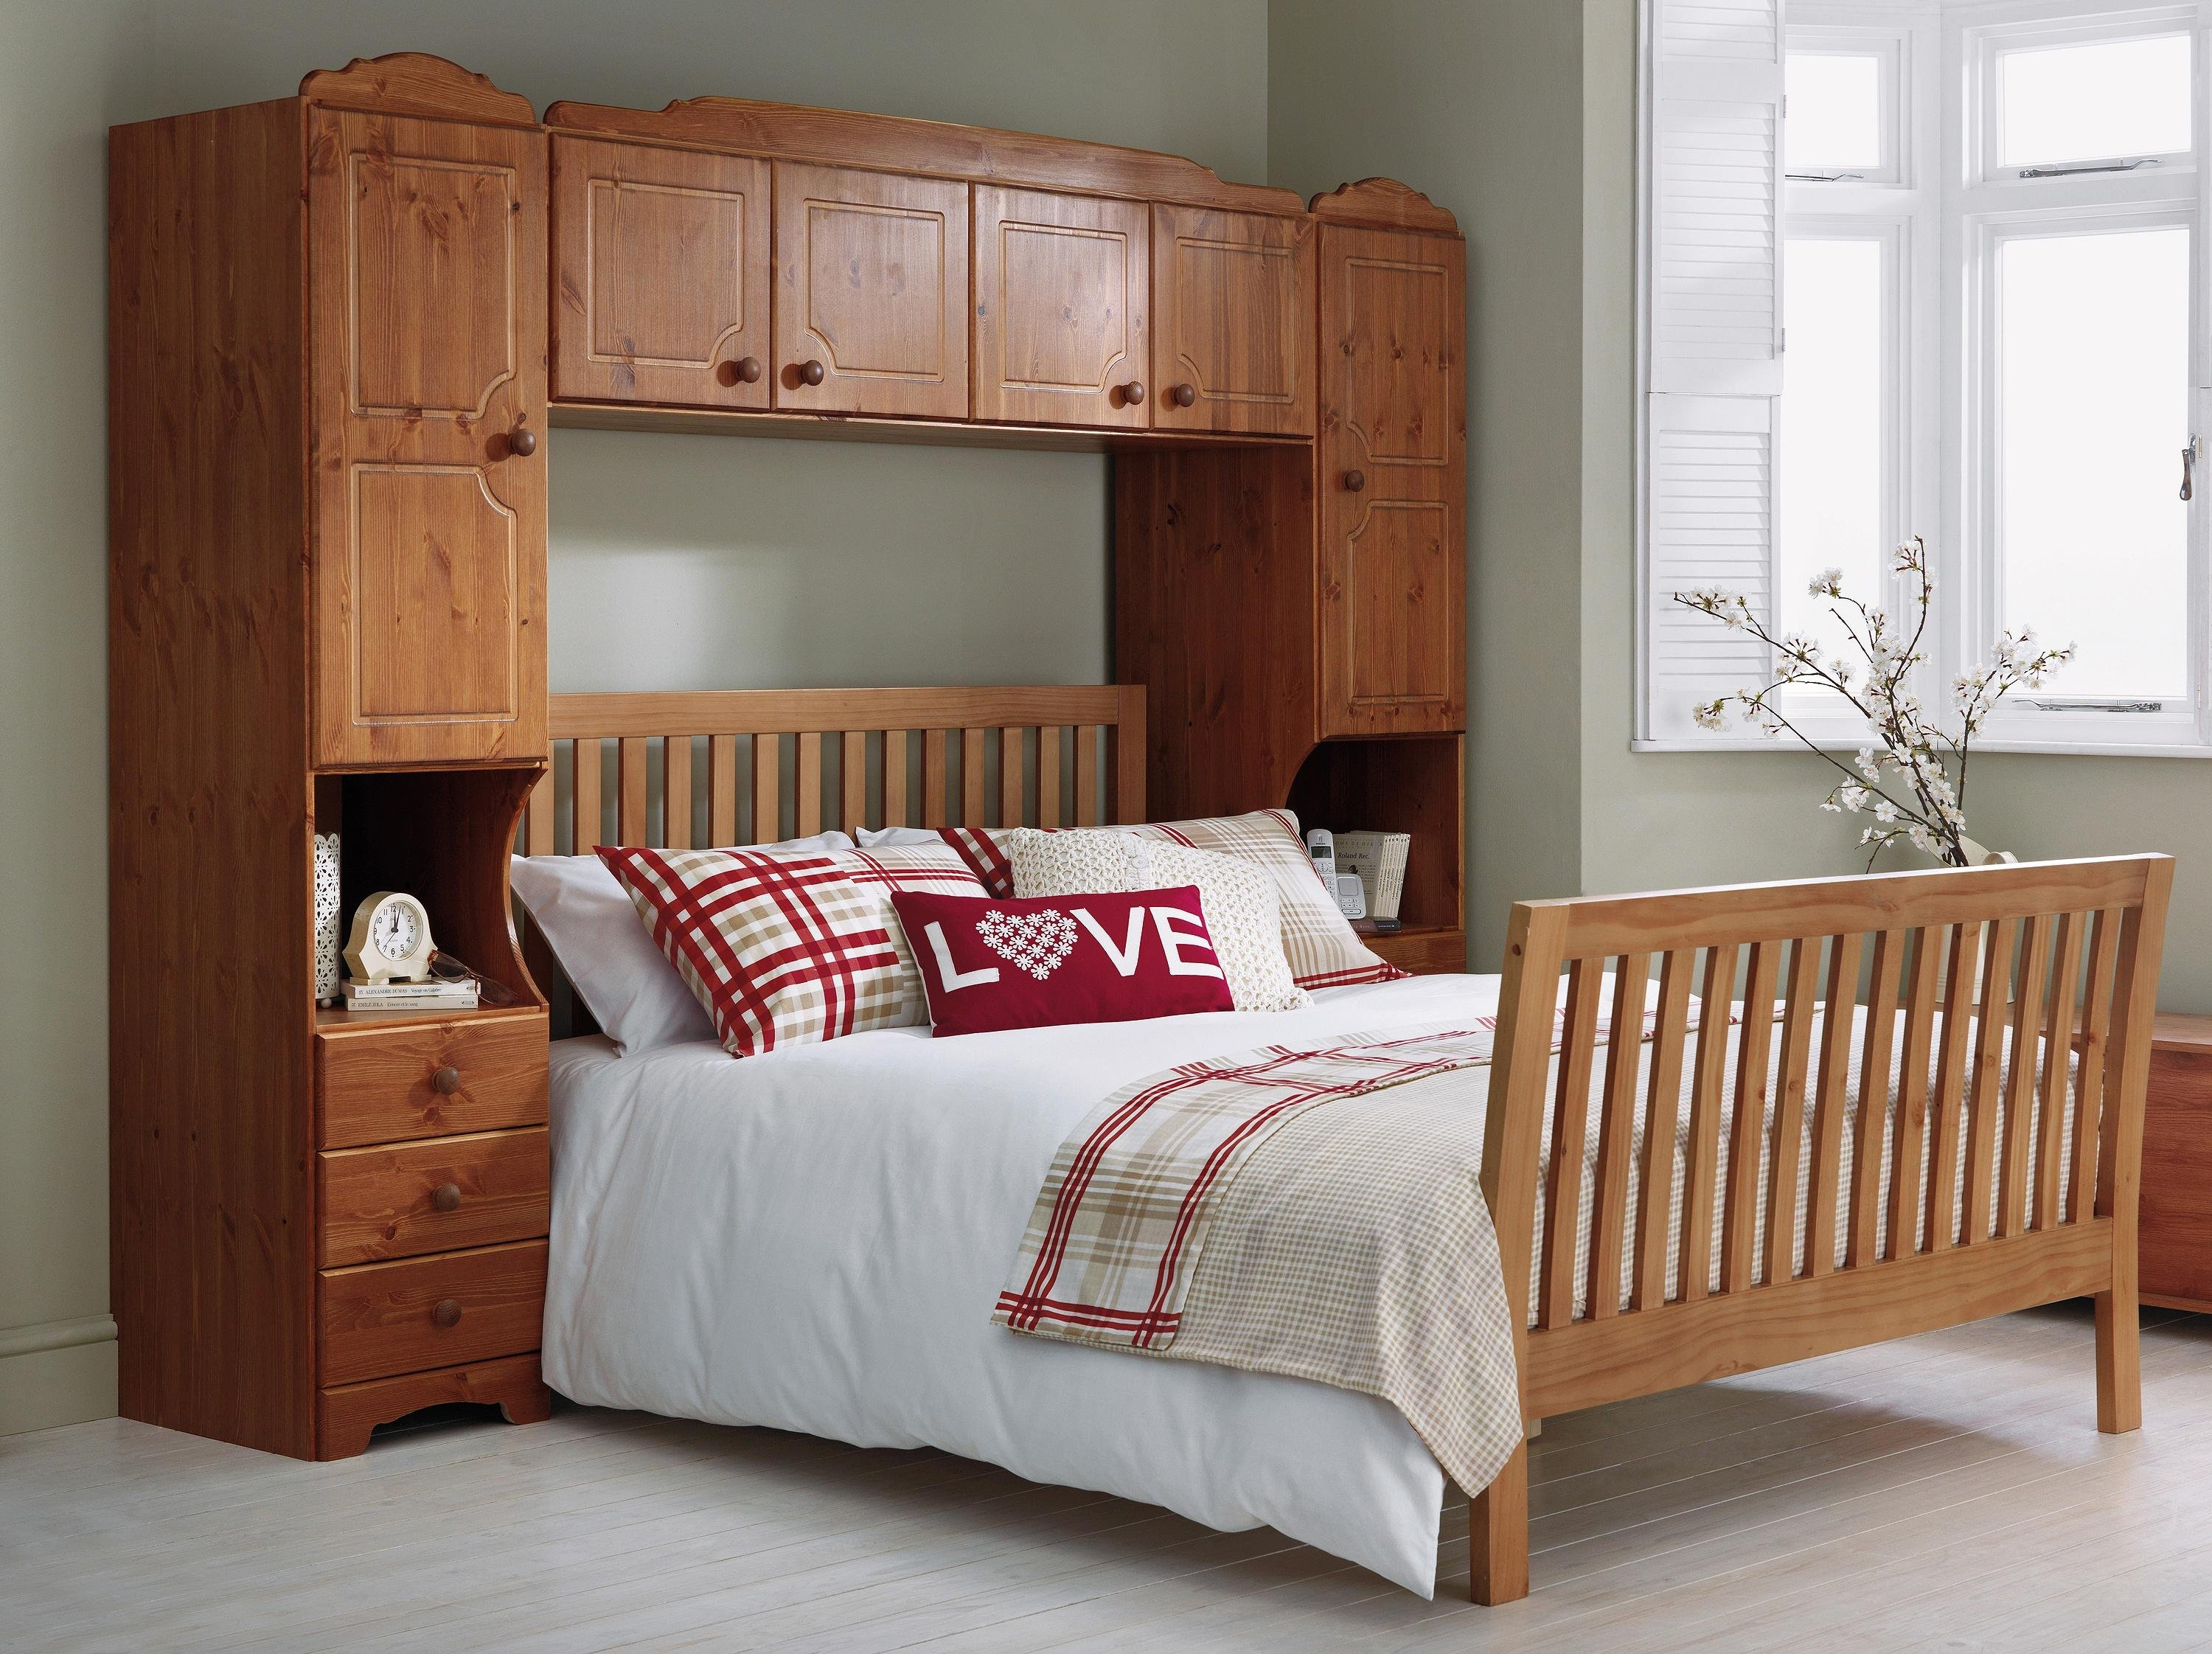 buy home nordic overbed fitment - pine at argos.co.uk - your